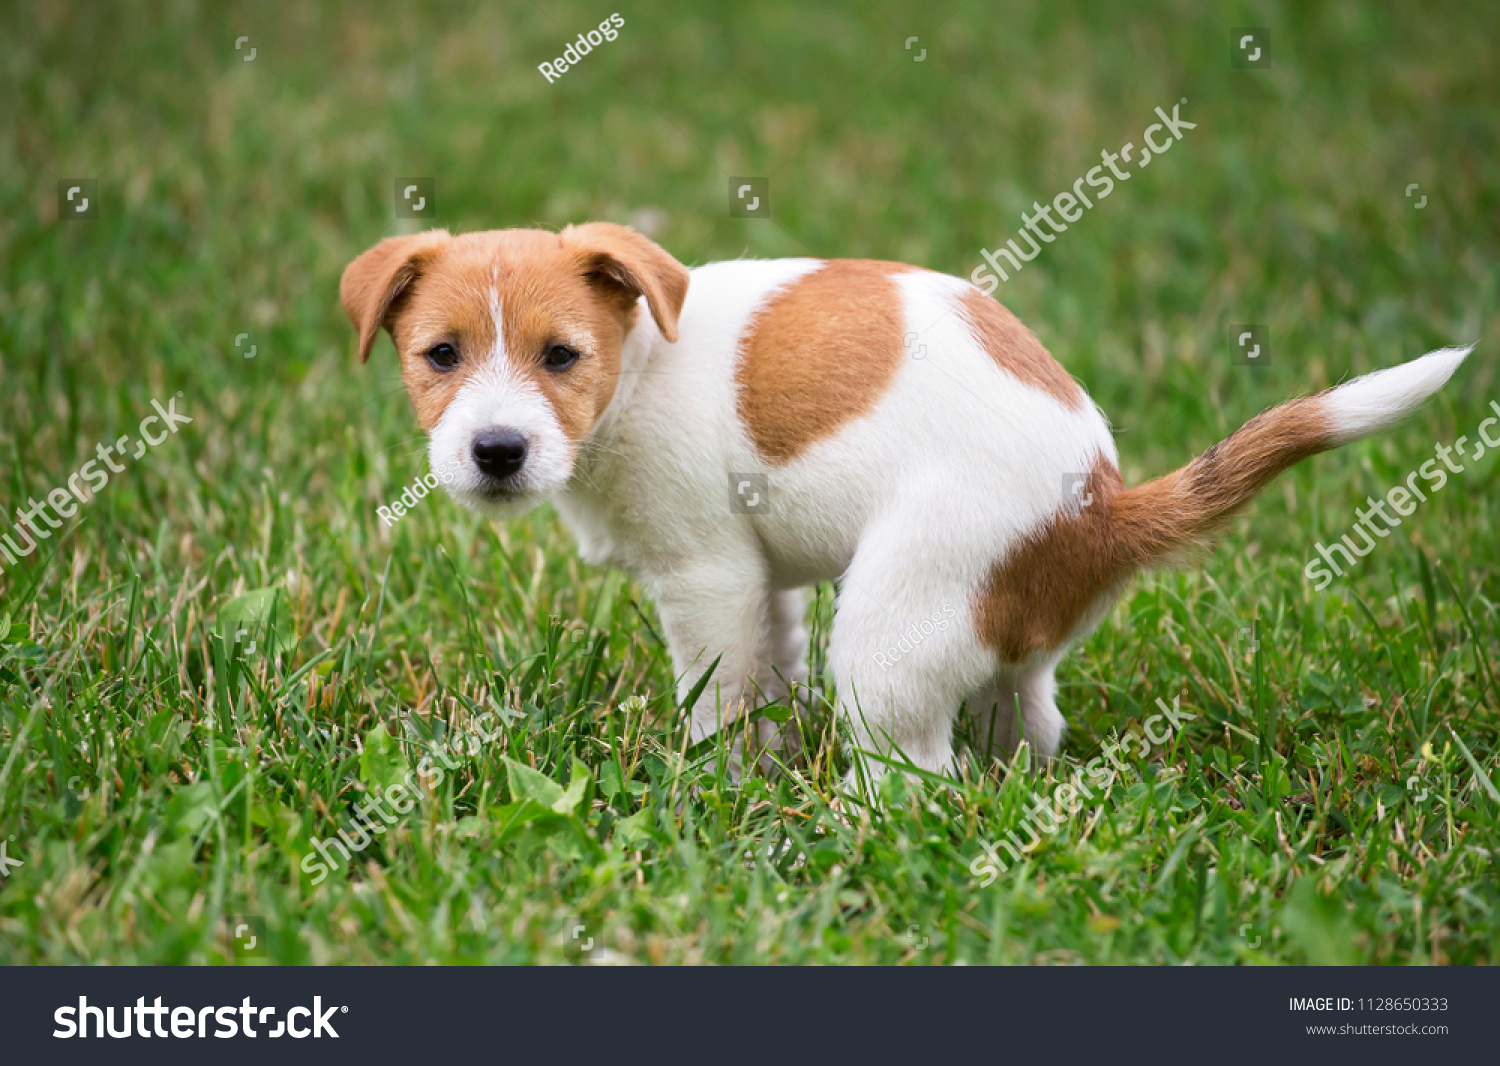 Cute Jack Russell Terrier Dog Puppy Stock Photo Edit Now 1128650333